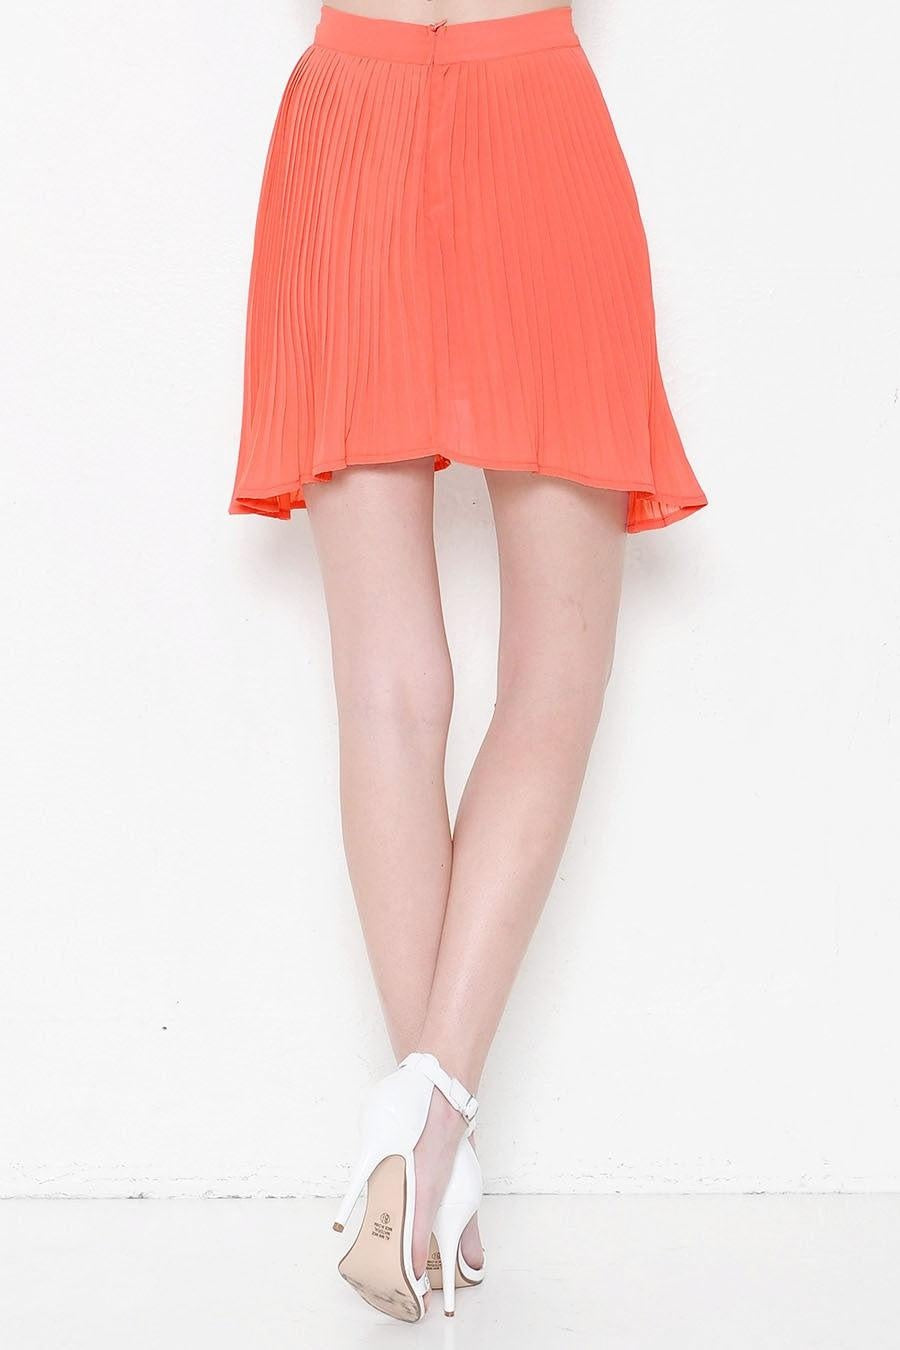 Coral Pleated Skirt - My Royal Closet